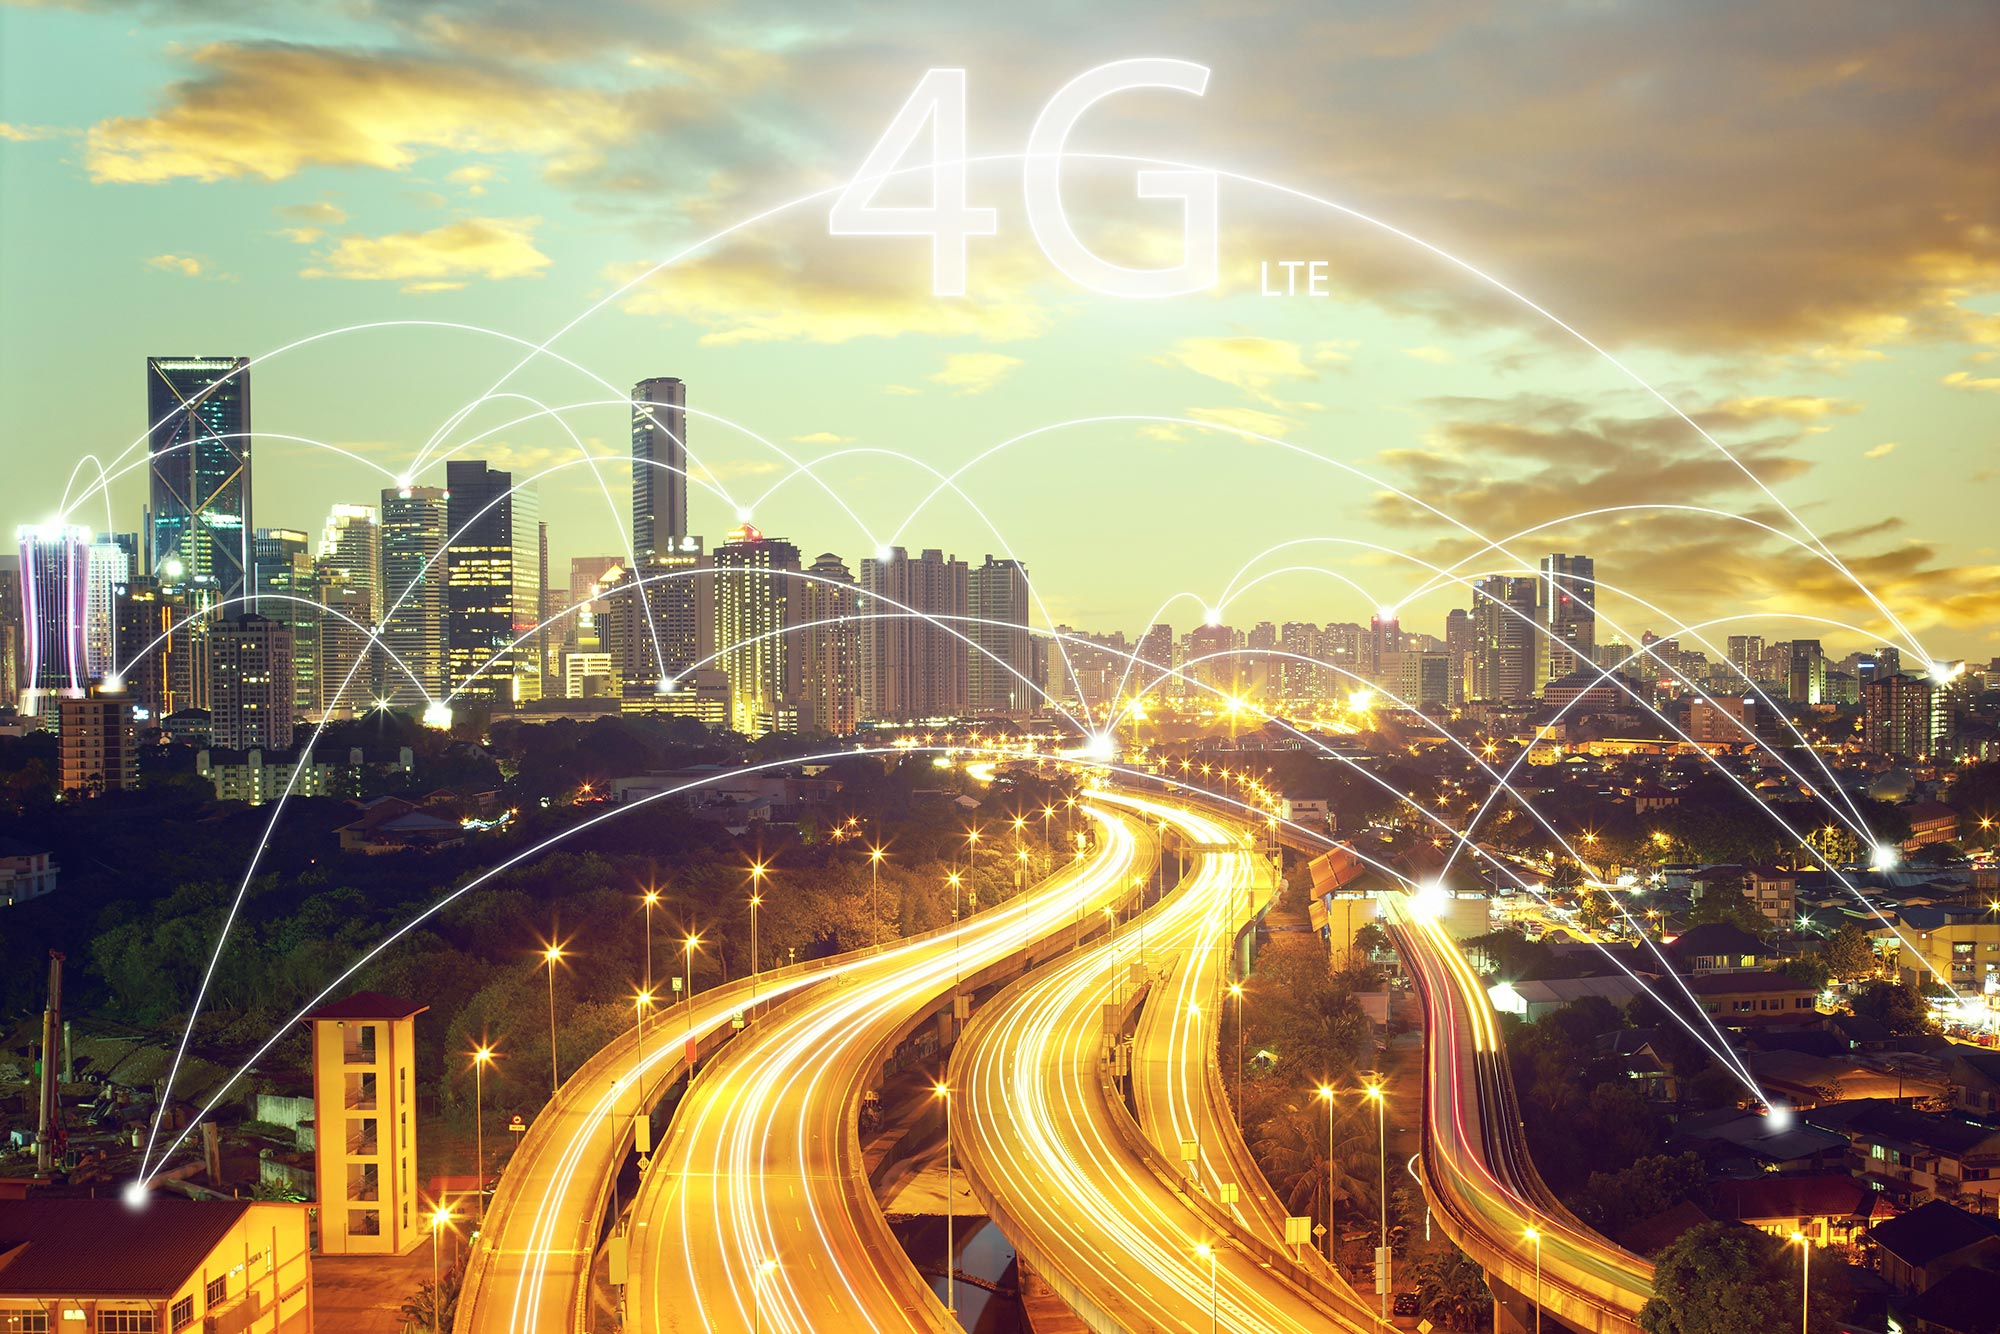 4g-connection-concept-city-at-night.jpg